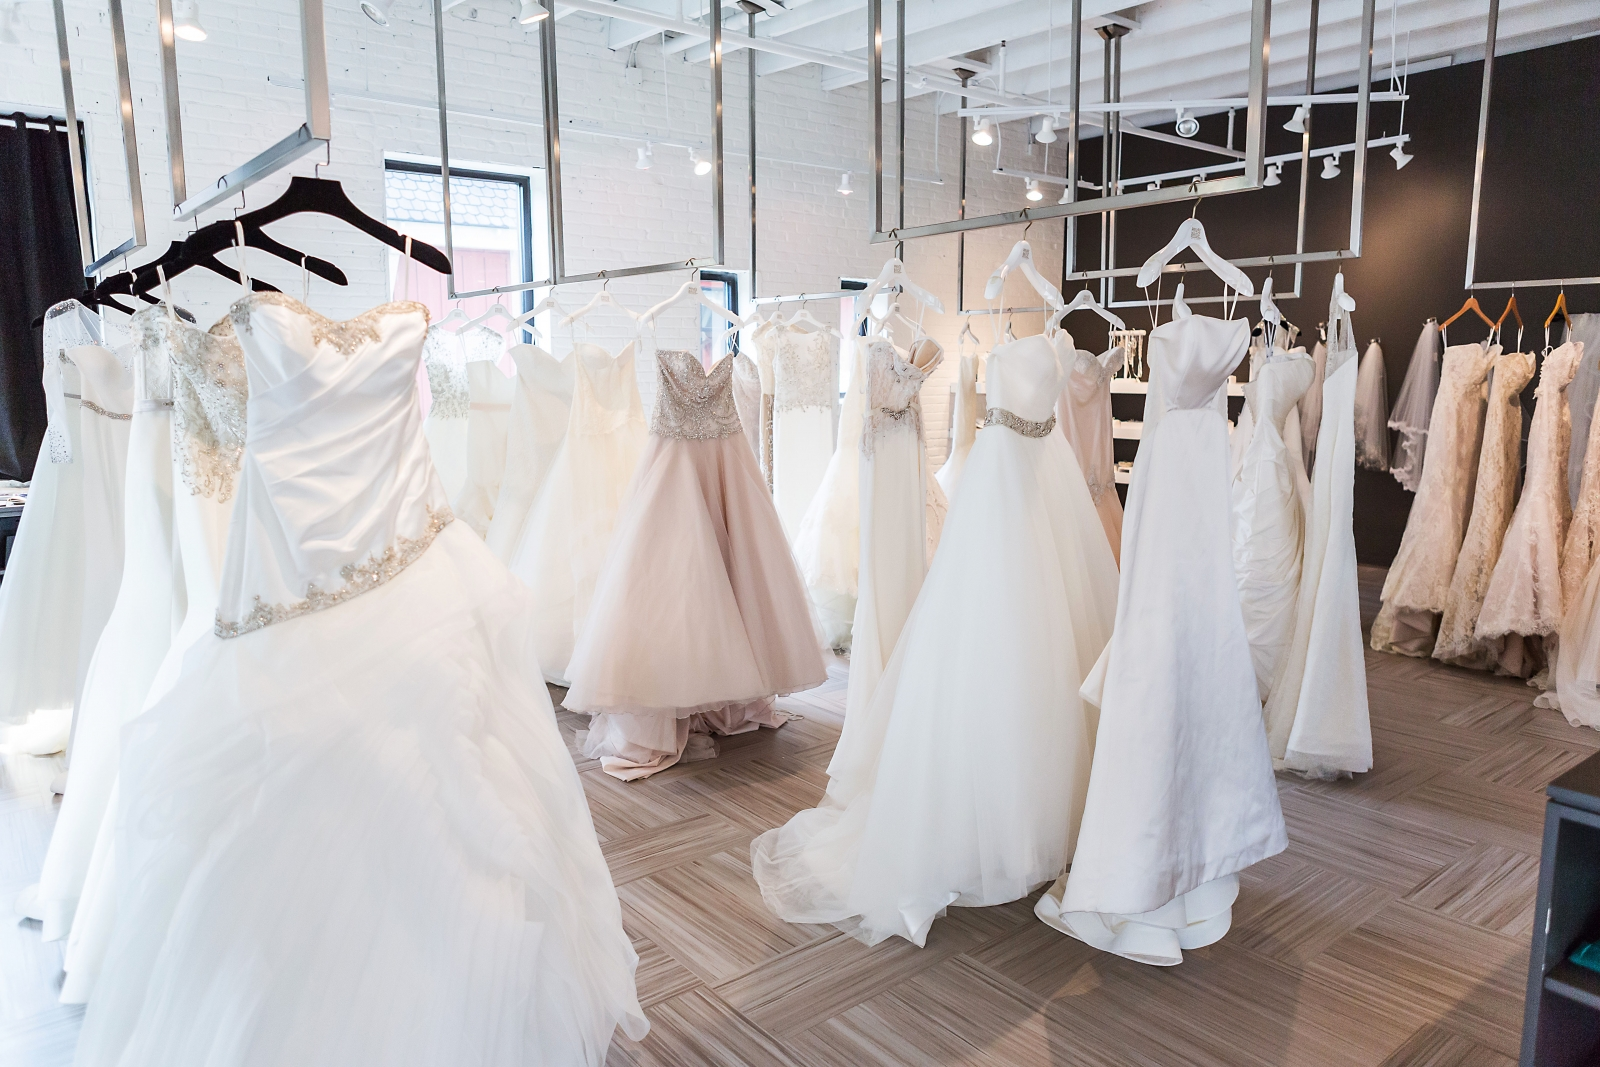 Bridal & Veil Outlet & offers an atmosphere with the personal assistance and products of a high end boutique at outlet prices – up to 75% off regular retail pricing.